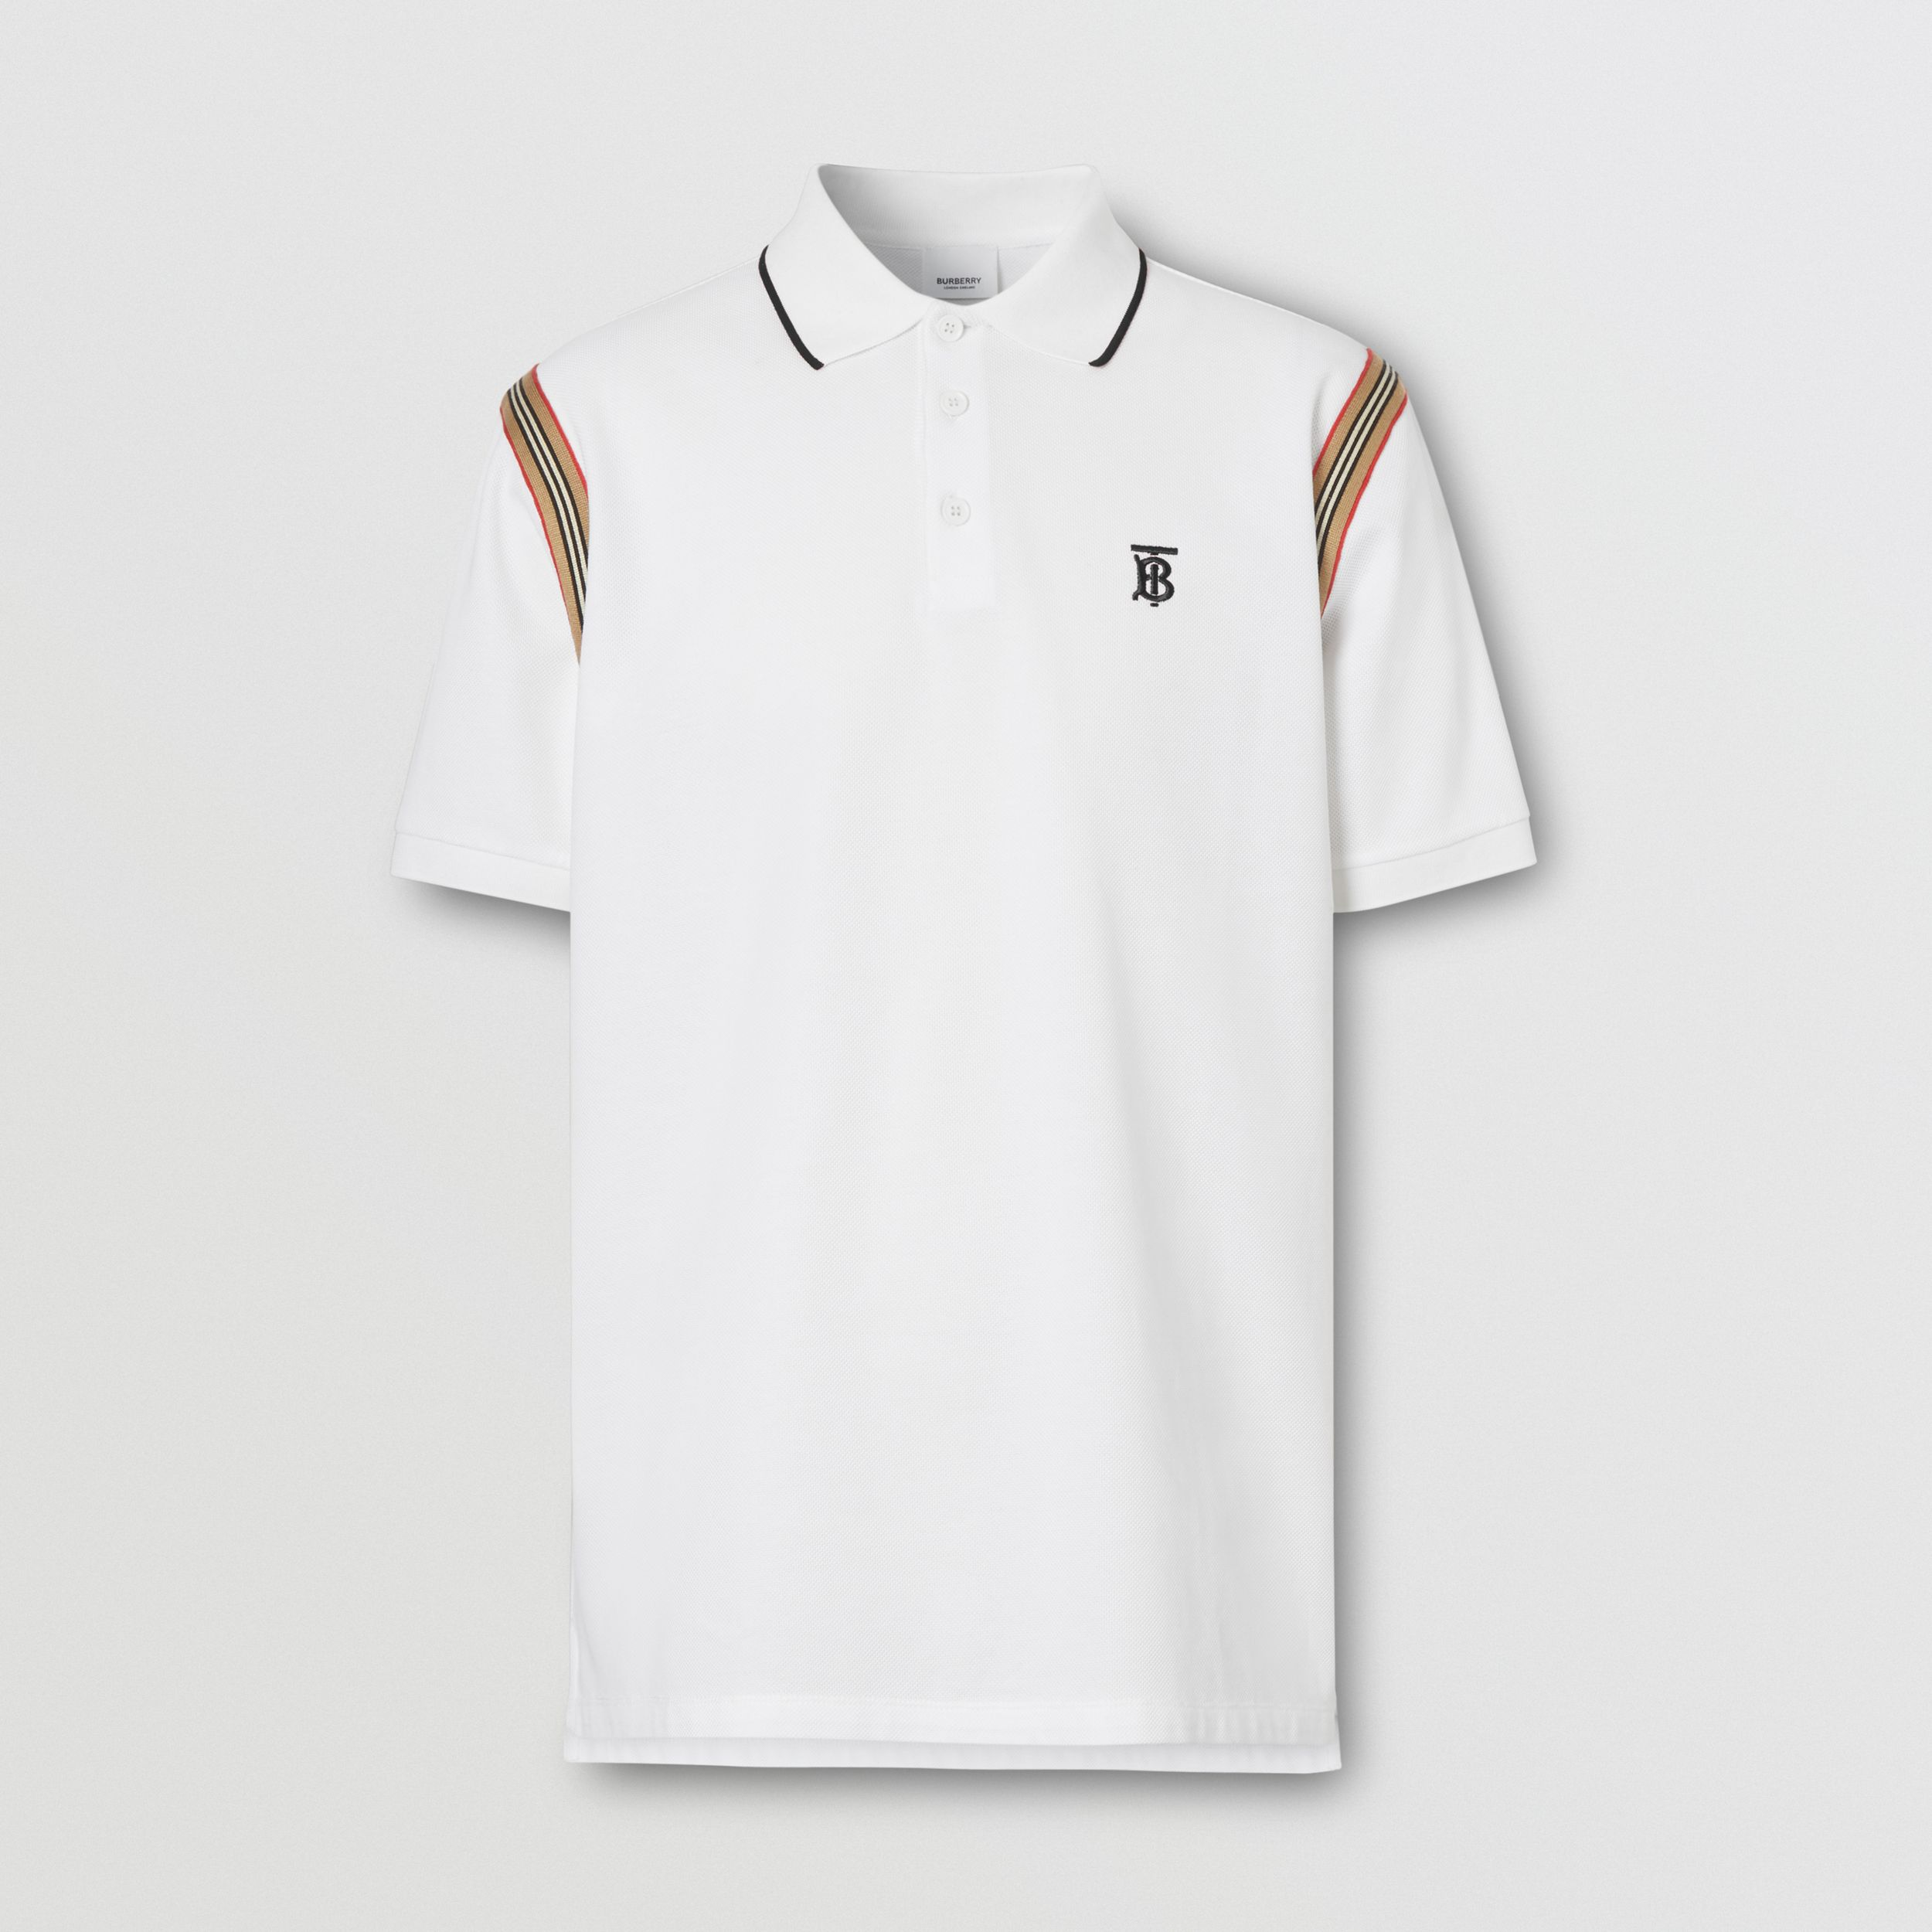 Icon Stripe Trim Monogram Motif Cotton Polo Shirt in White - Men | Burberry - 4